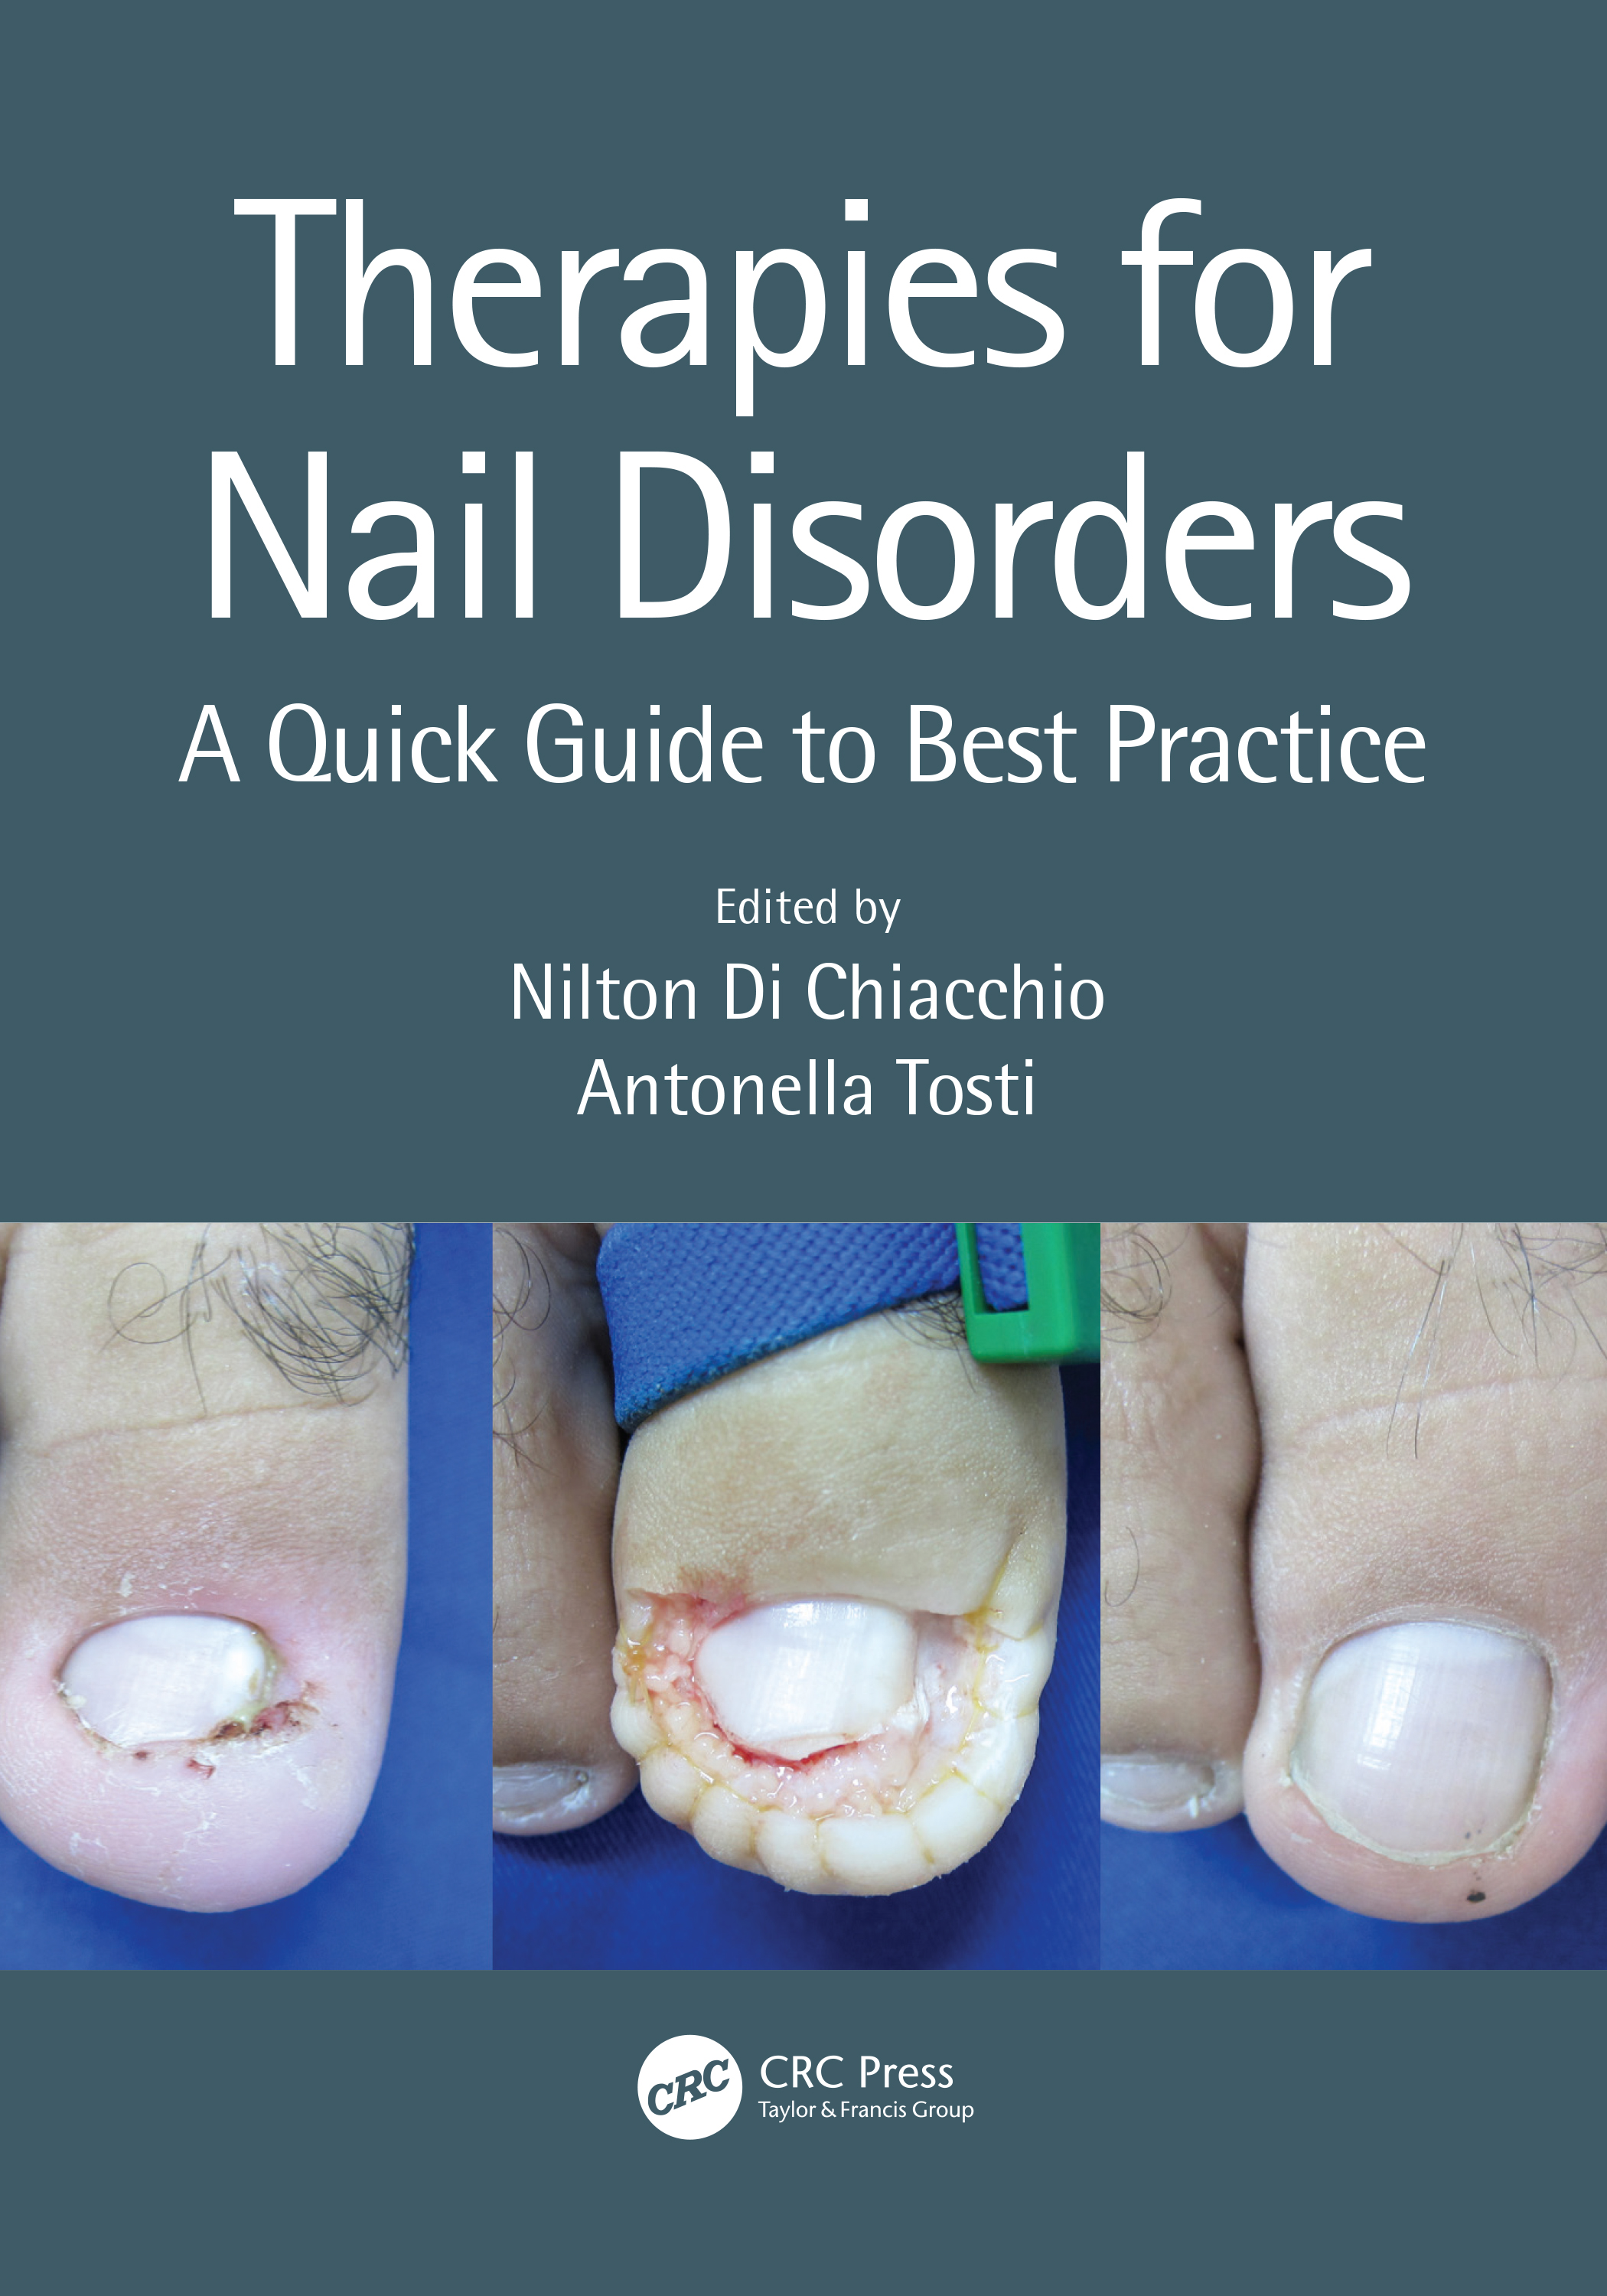 Therapies for Nail Disorders: A Quick Guide to Best Practice book cover